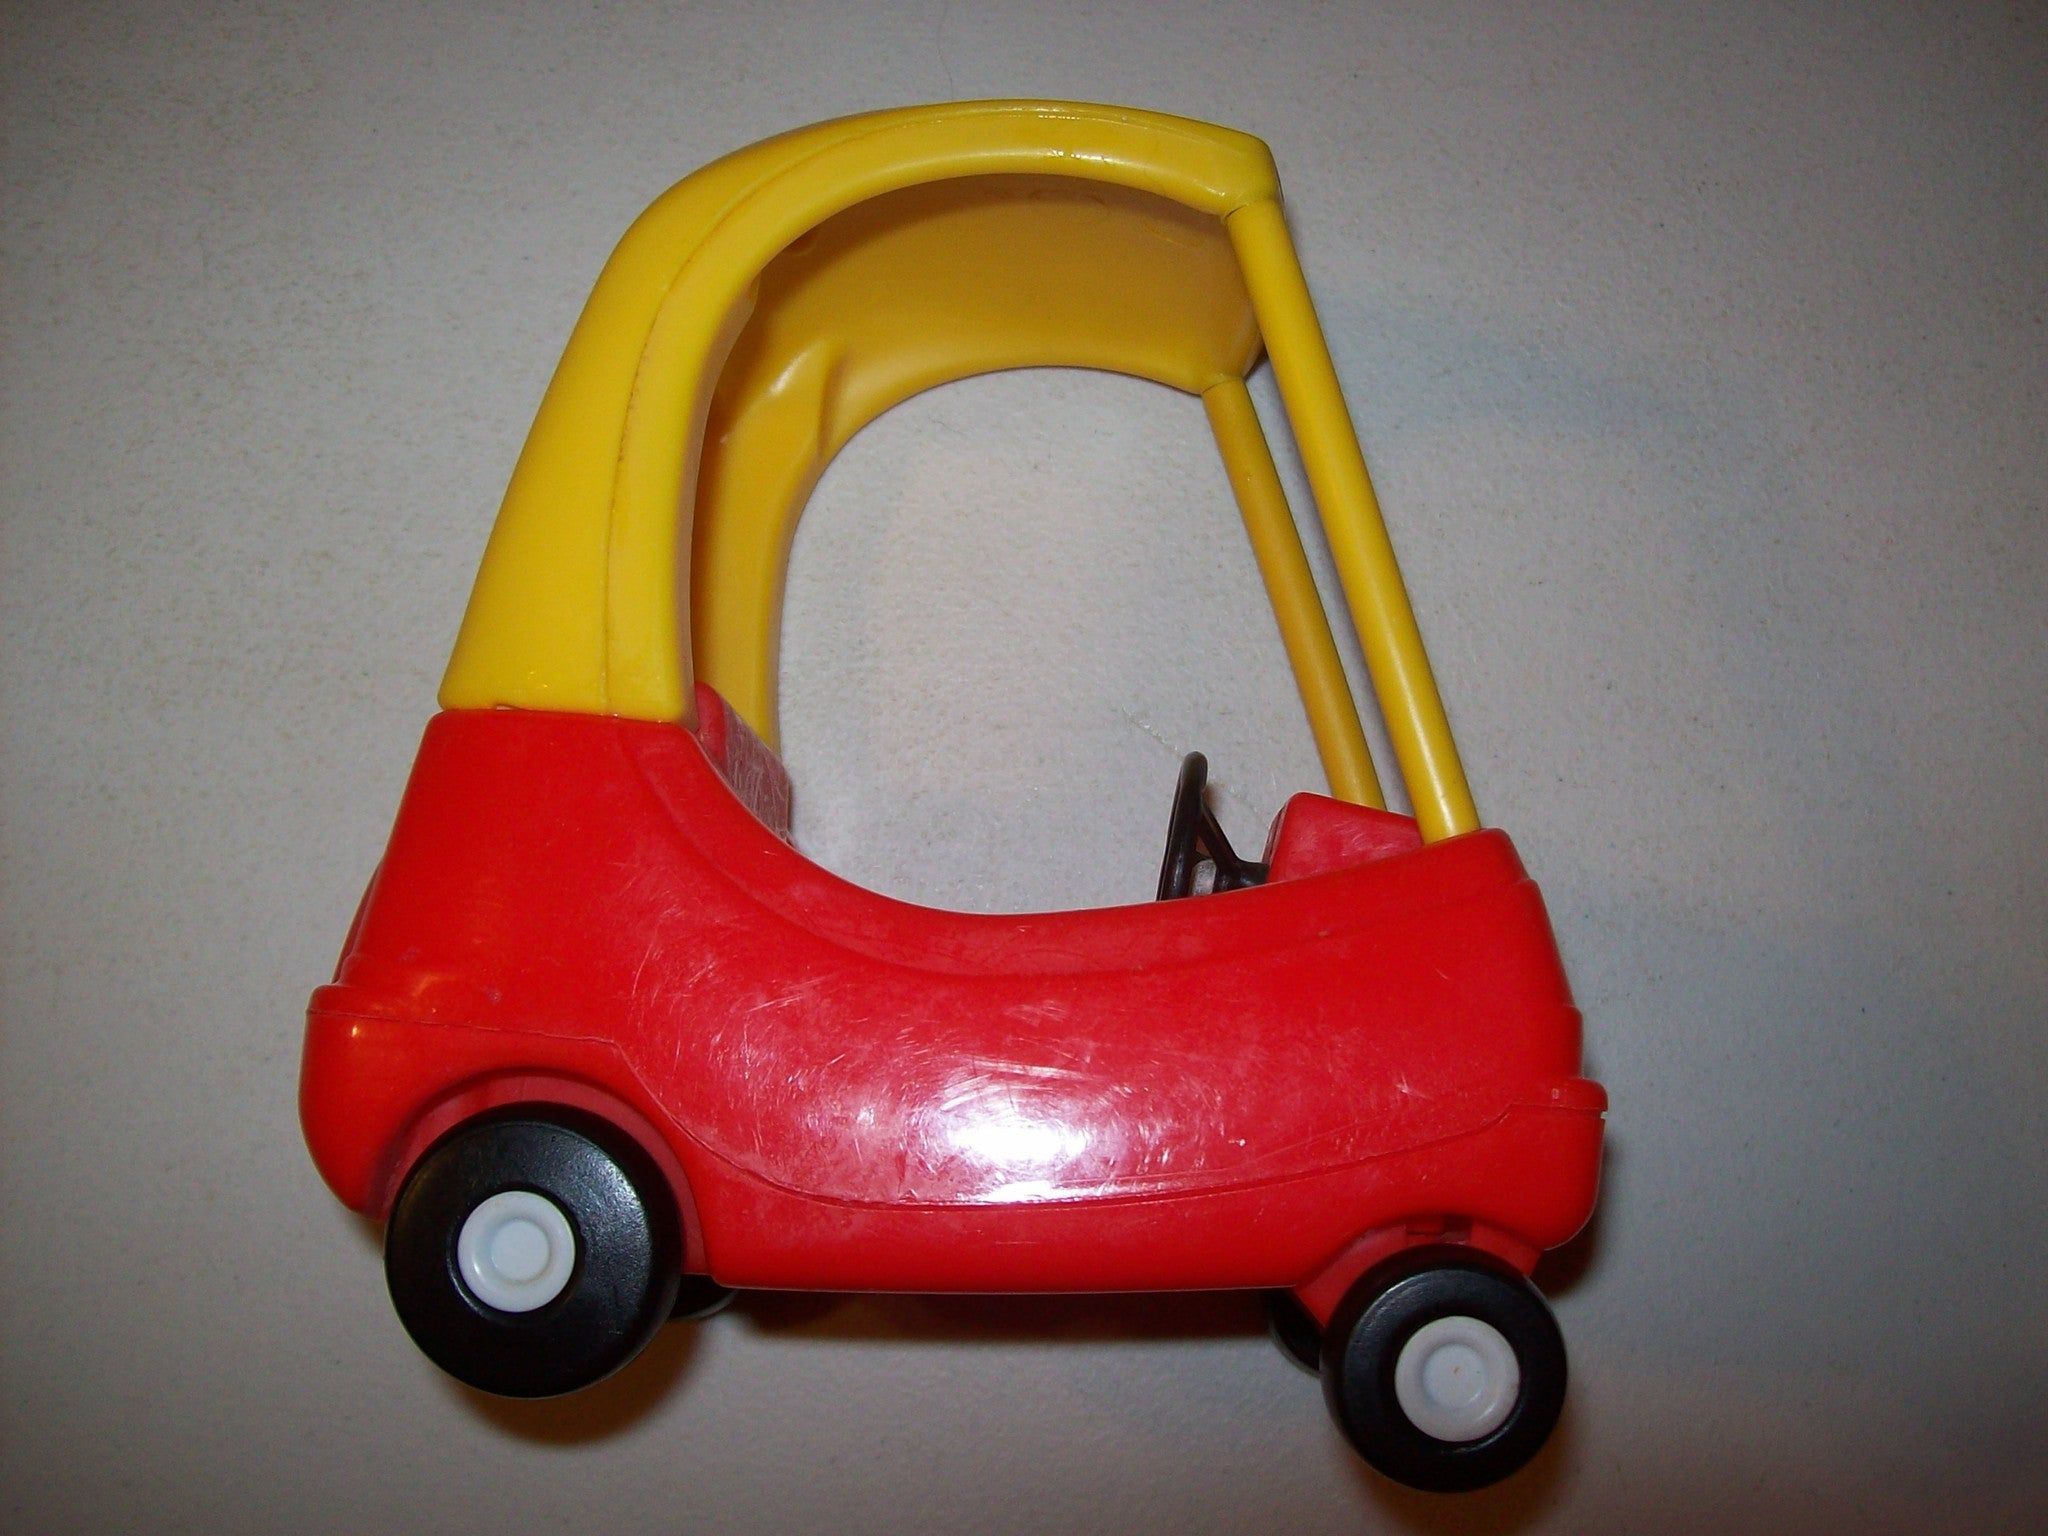 Little Tikes Dollhouse Size Cozy Coupe Car Red & Yellow